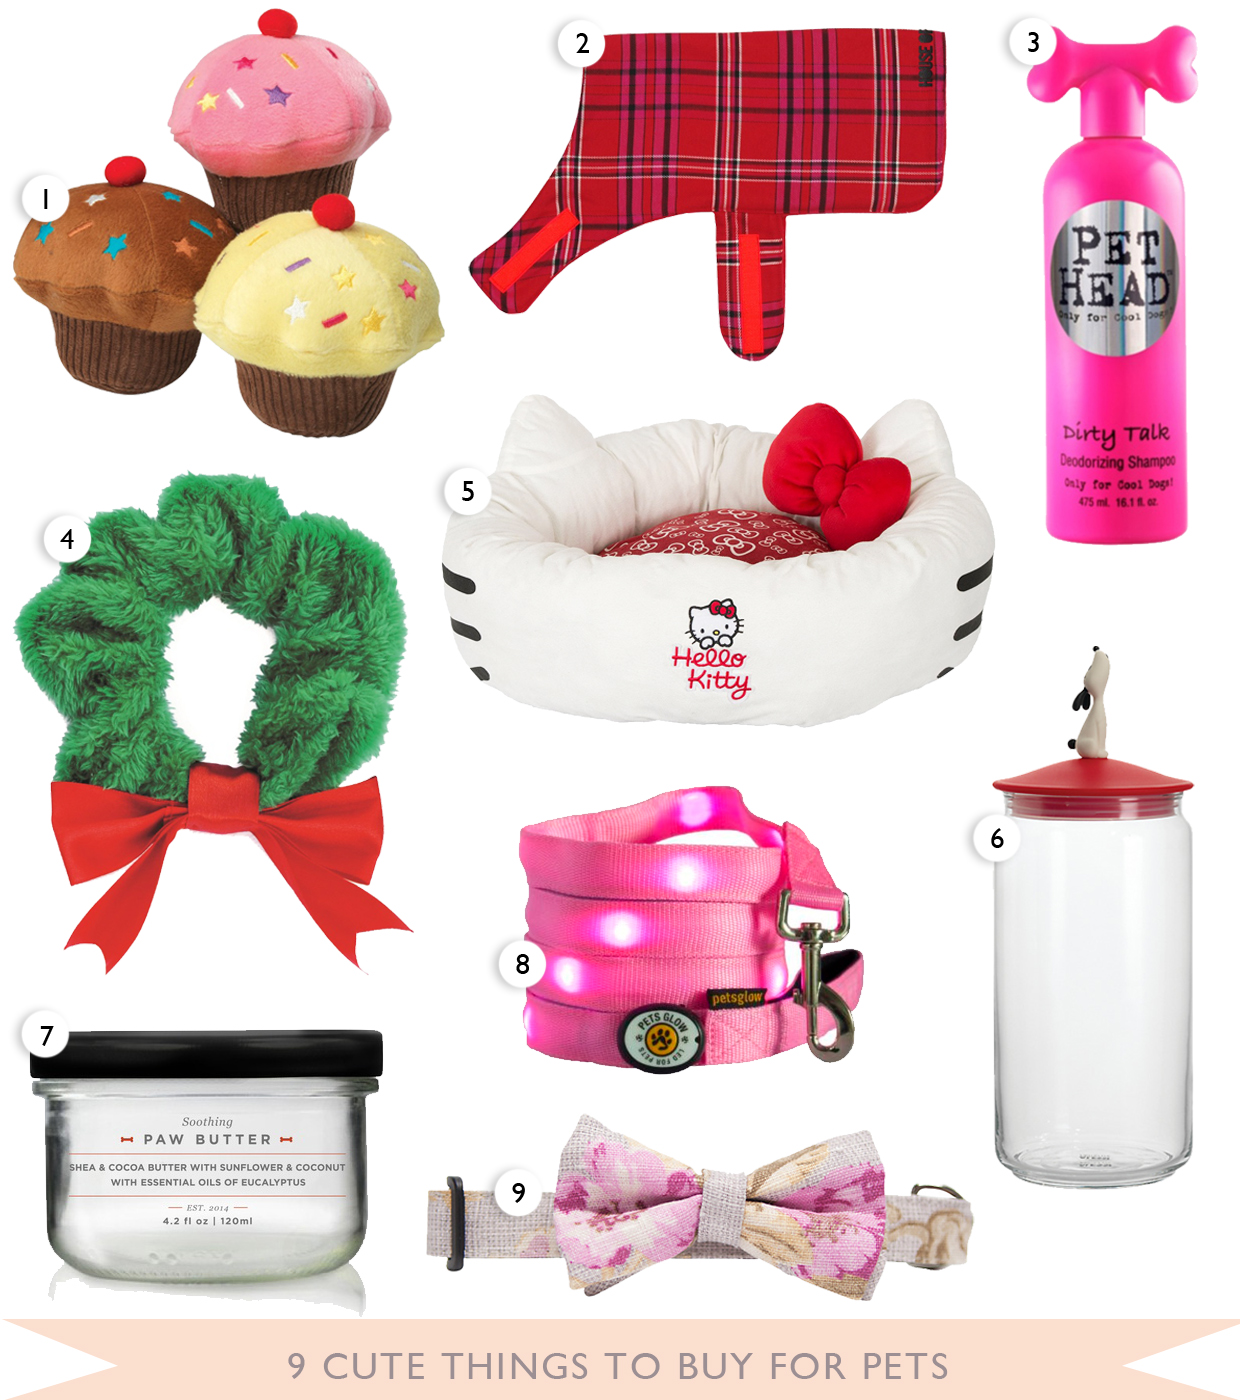 Things To Buy: 9 Cute Things To Buy For Pets